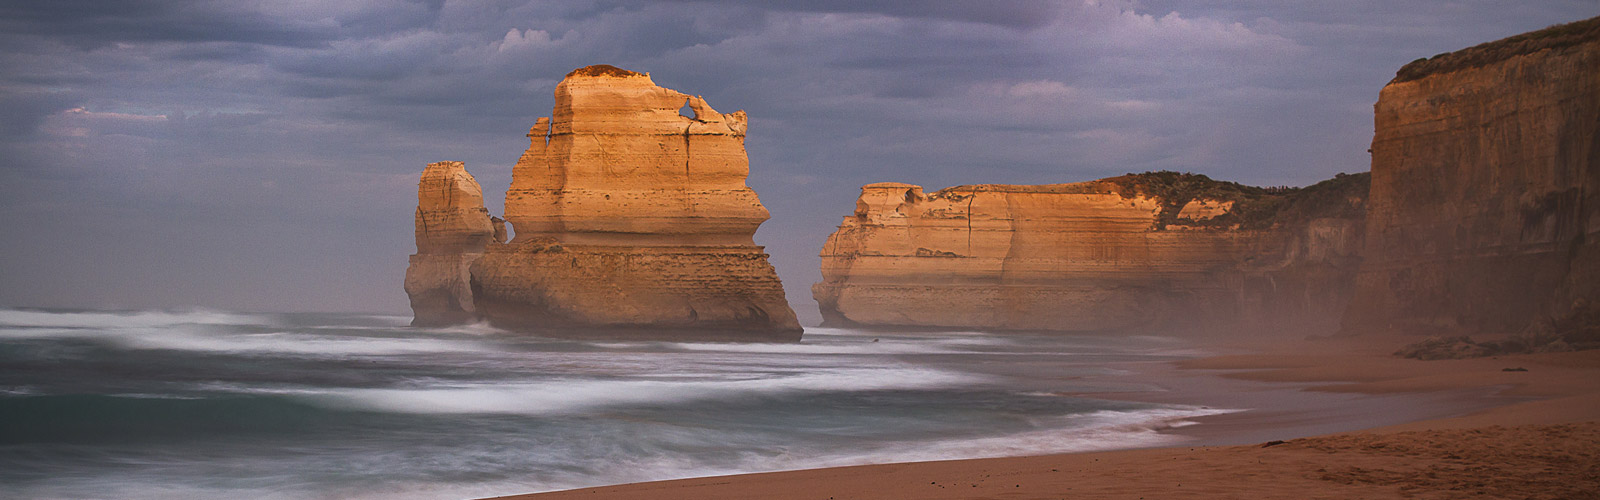 Great Ocean Road Destinations